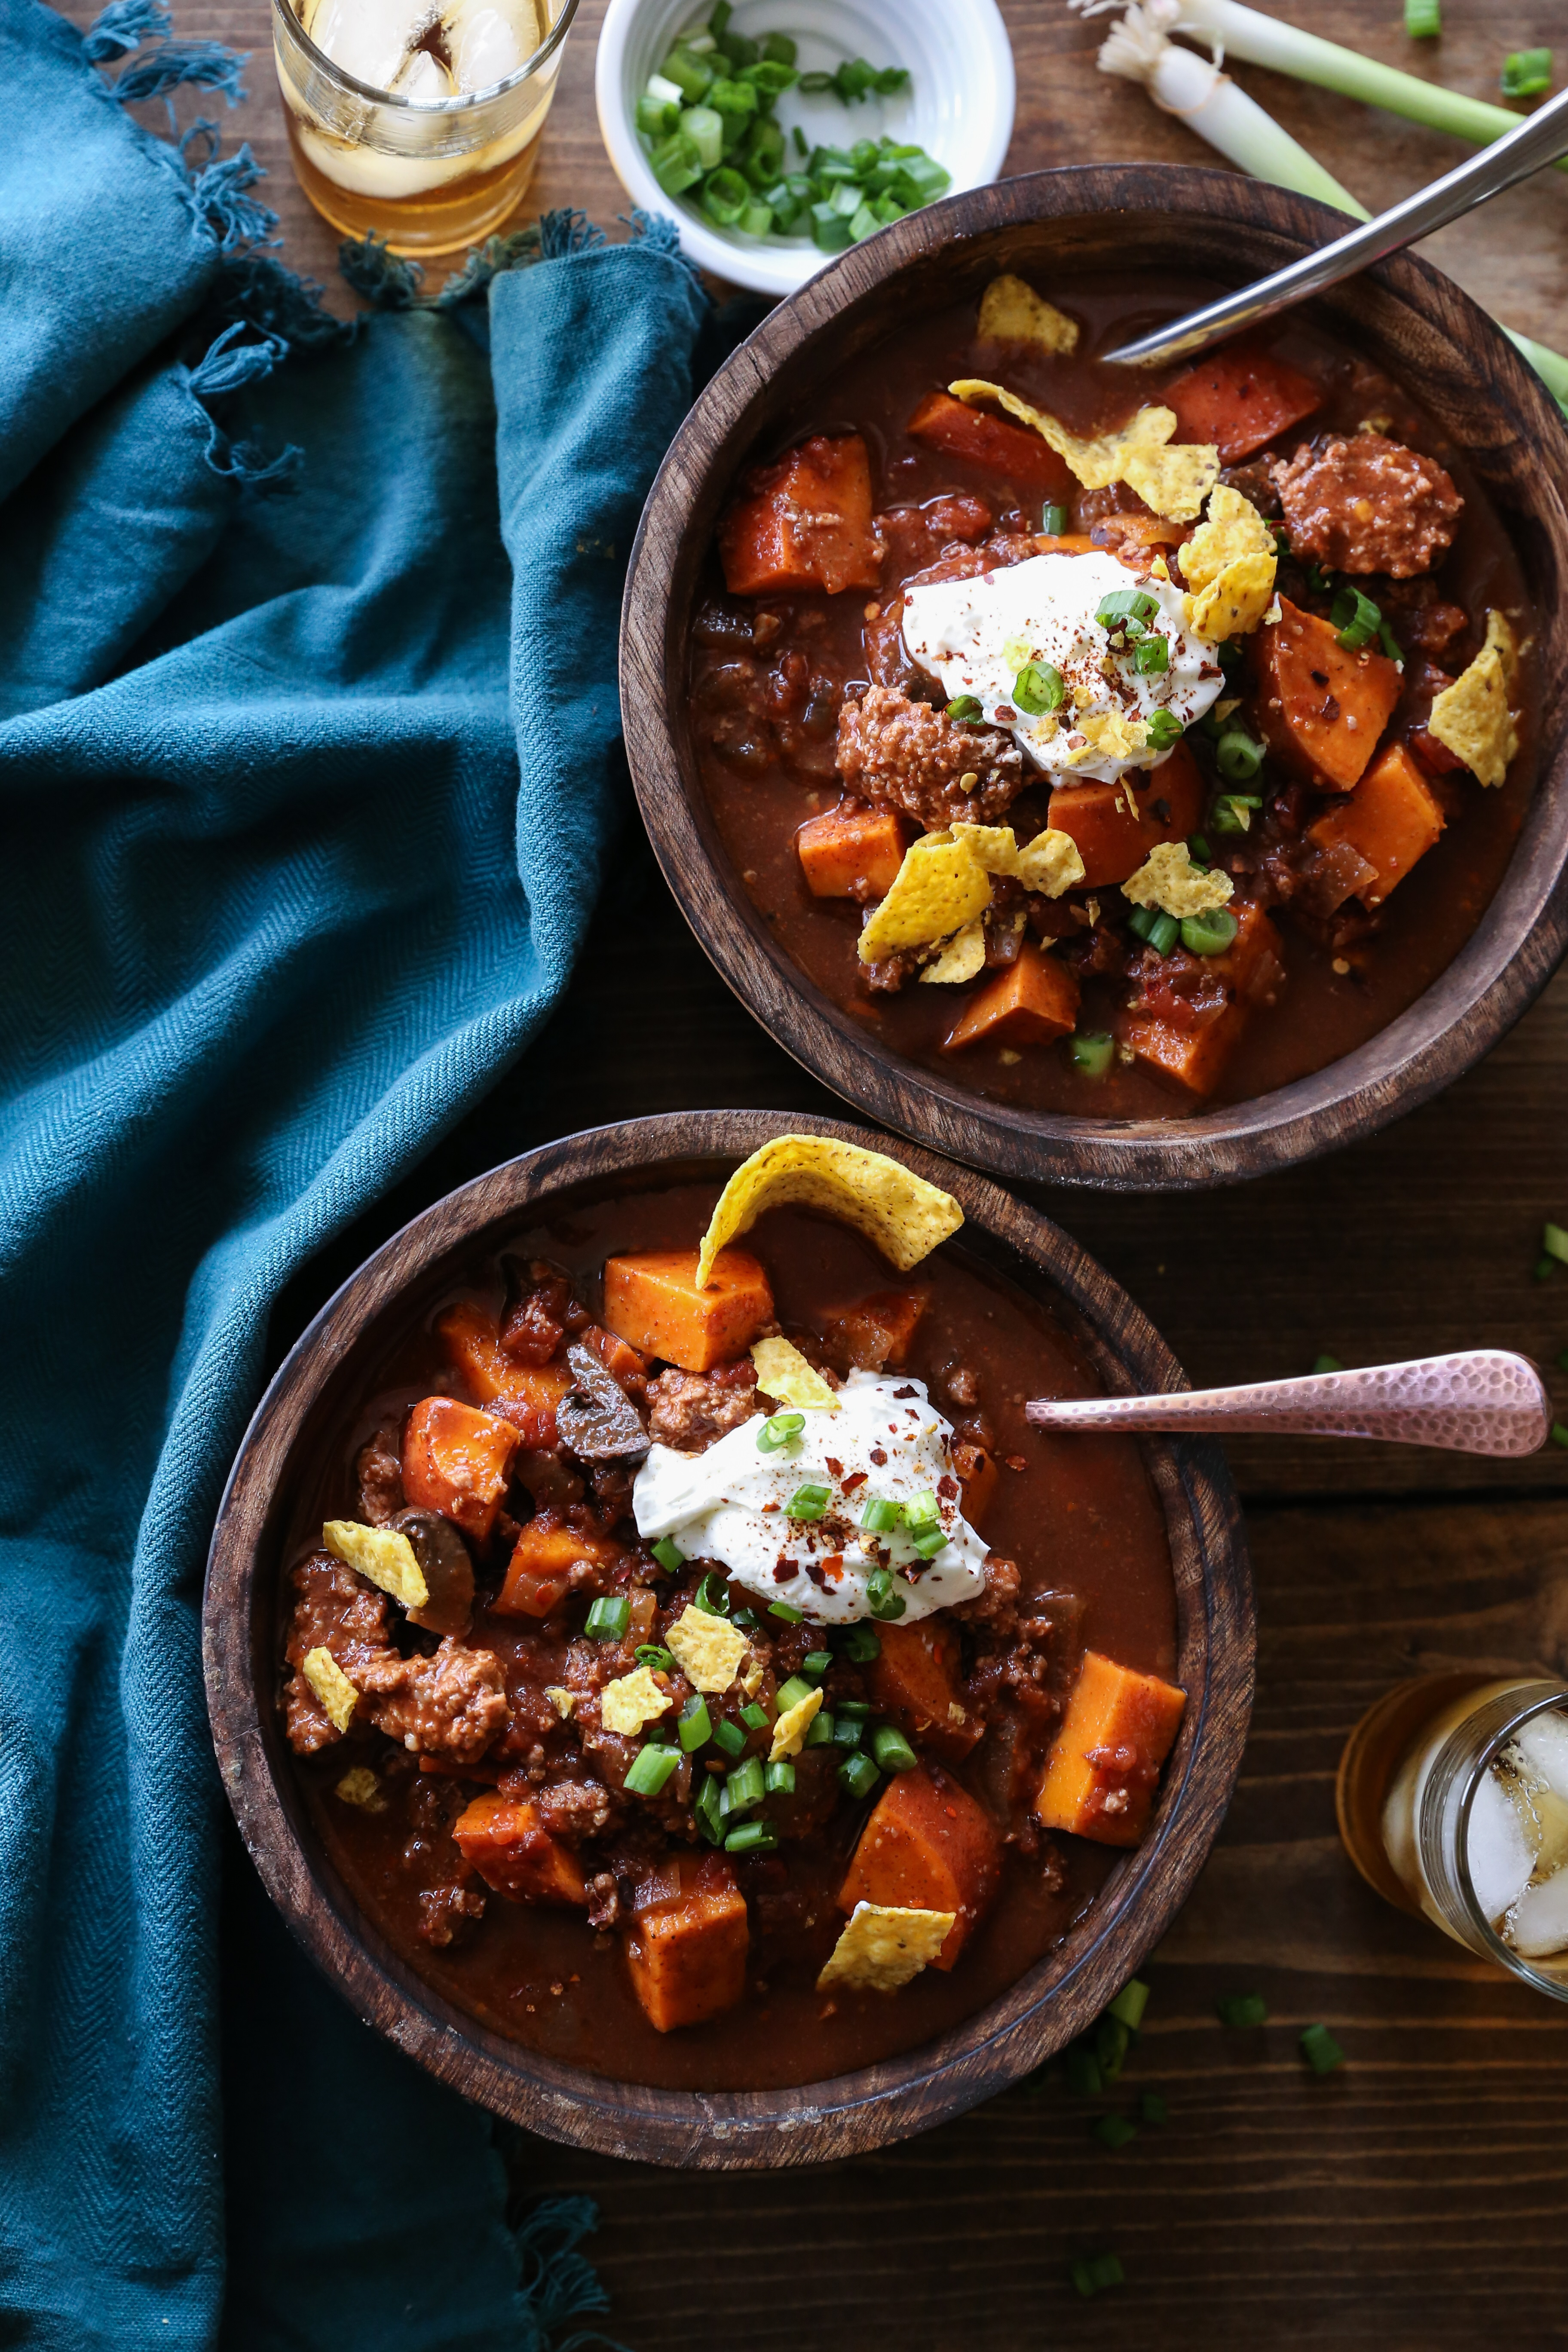 Crock Pot Boozy Bison and Sweet Potato Chili - bean-free and gluten-free and can easily be made paleo by omitting the booze. | TheRoastedRoot.net #healthy #glutenfree #dinner #slowcooker #recipe